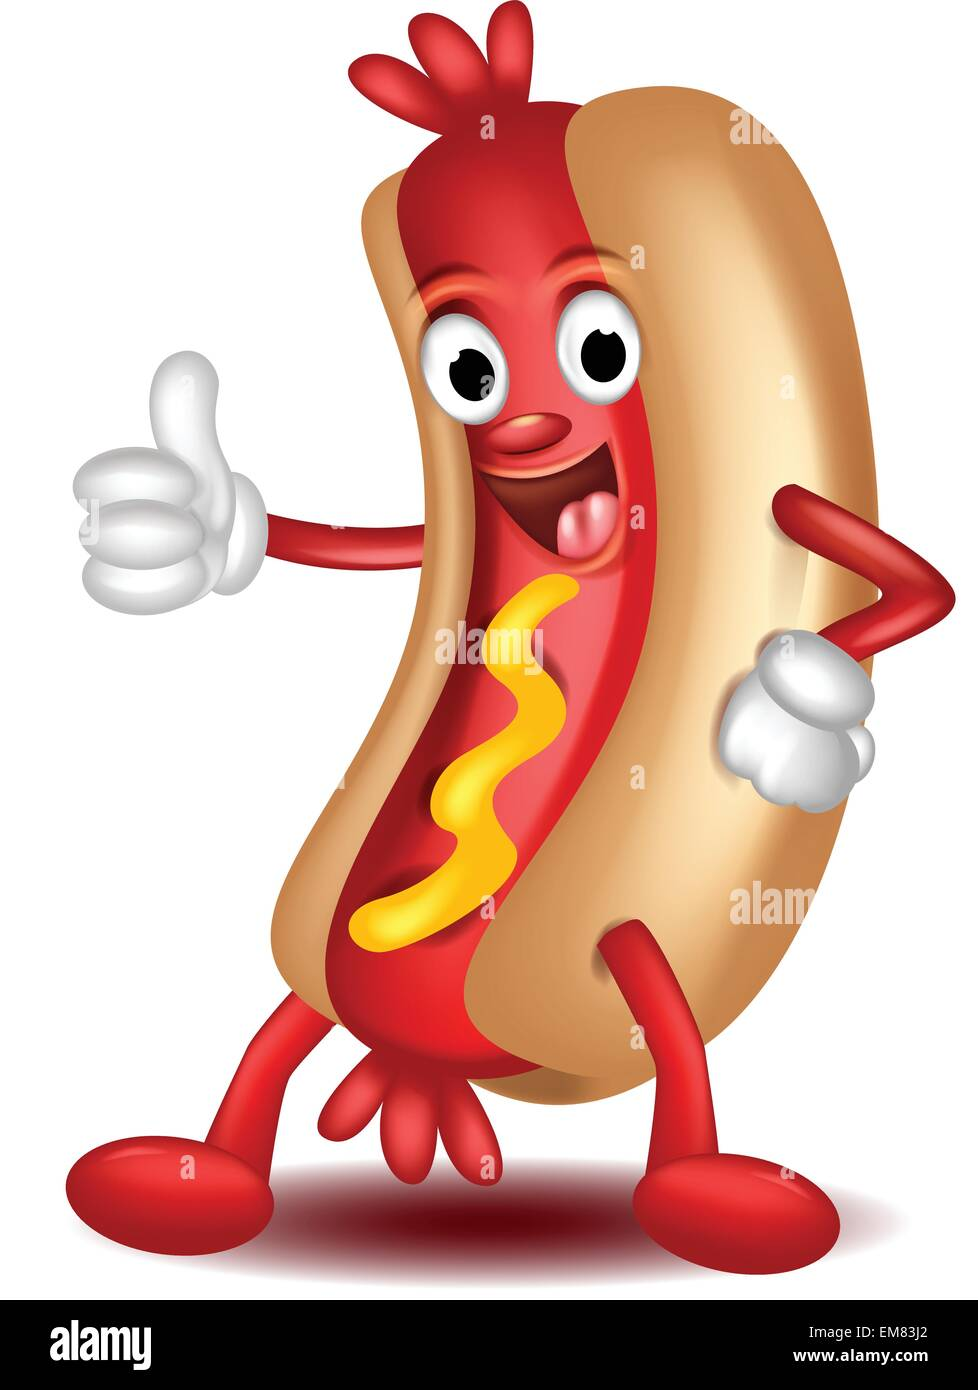 Hot Dog Cartoon Daumen Hoch Vektor Abbildung Bild 81313066 Alamy